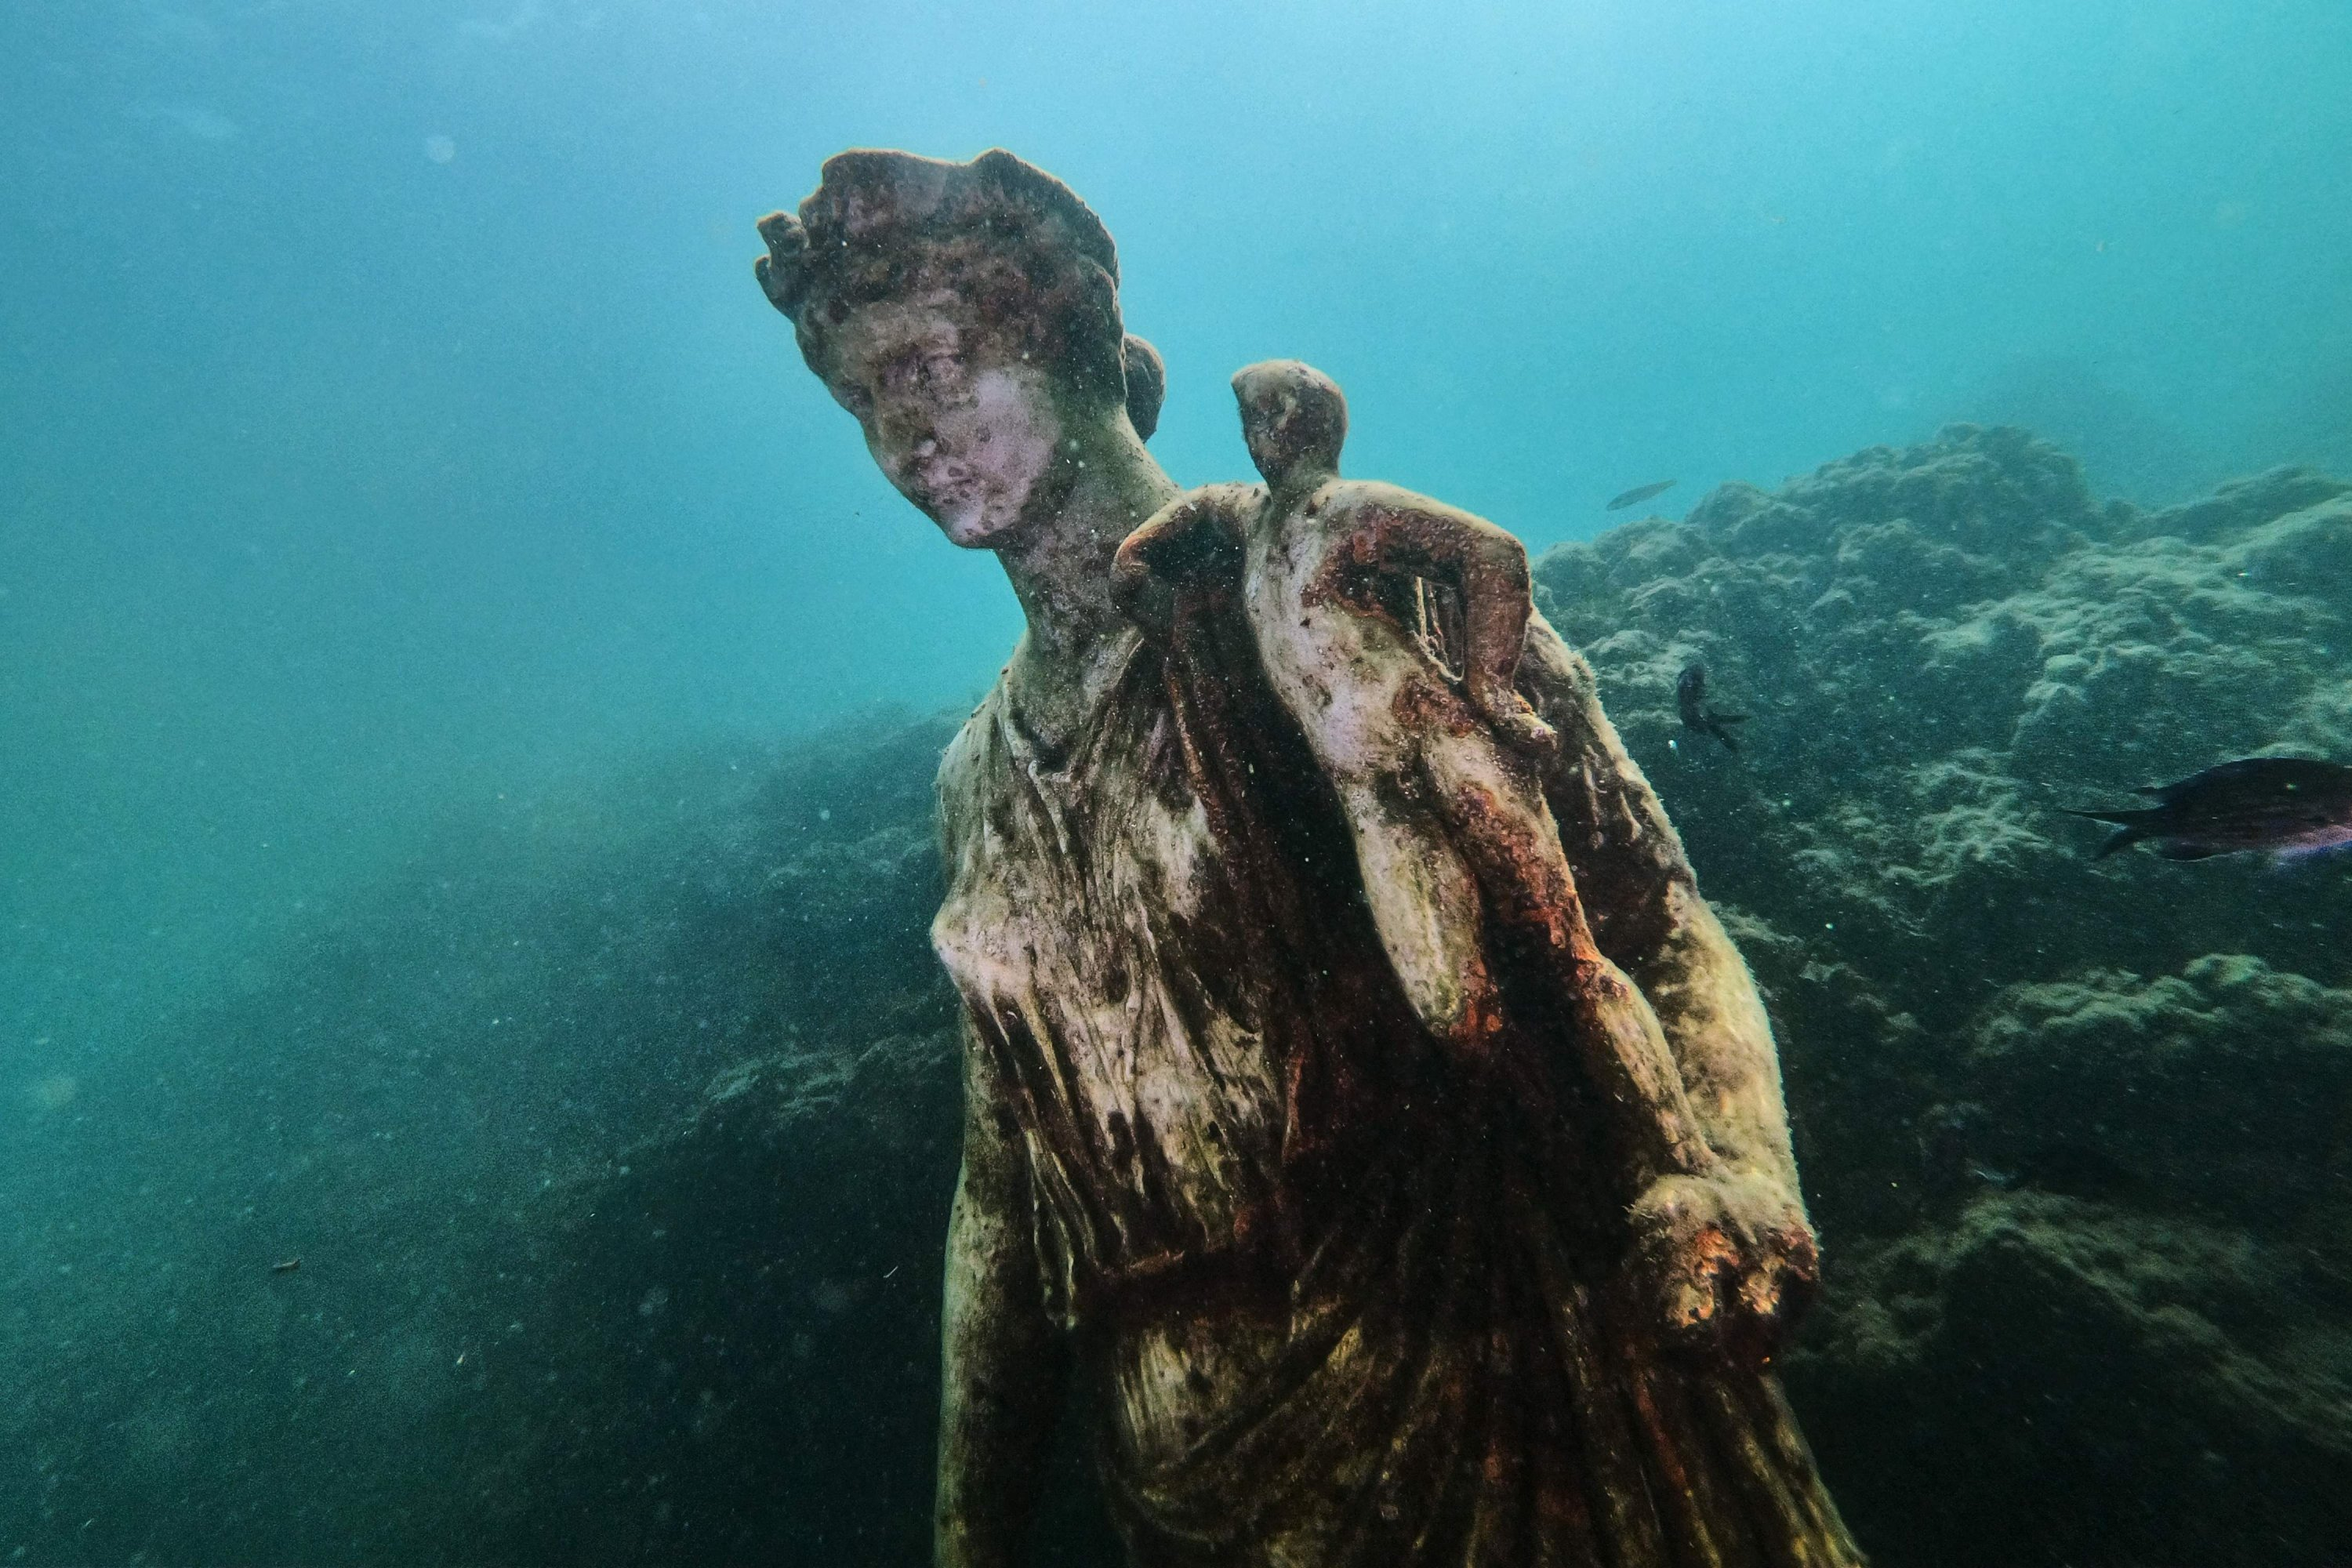 Fish swim past a copy of the original statue preserved at the Museum of Baiae, Pozzuoli near Naples, Italy, Aug. 18, 2021. (AFP Photo)